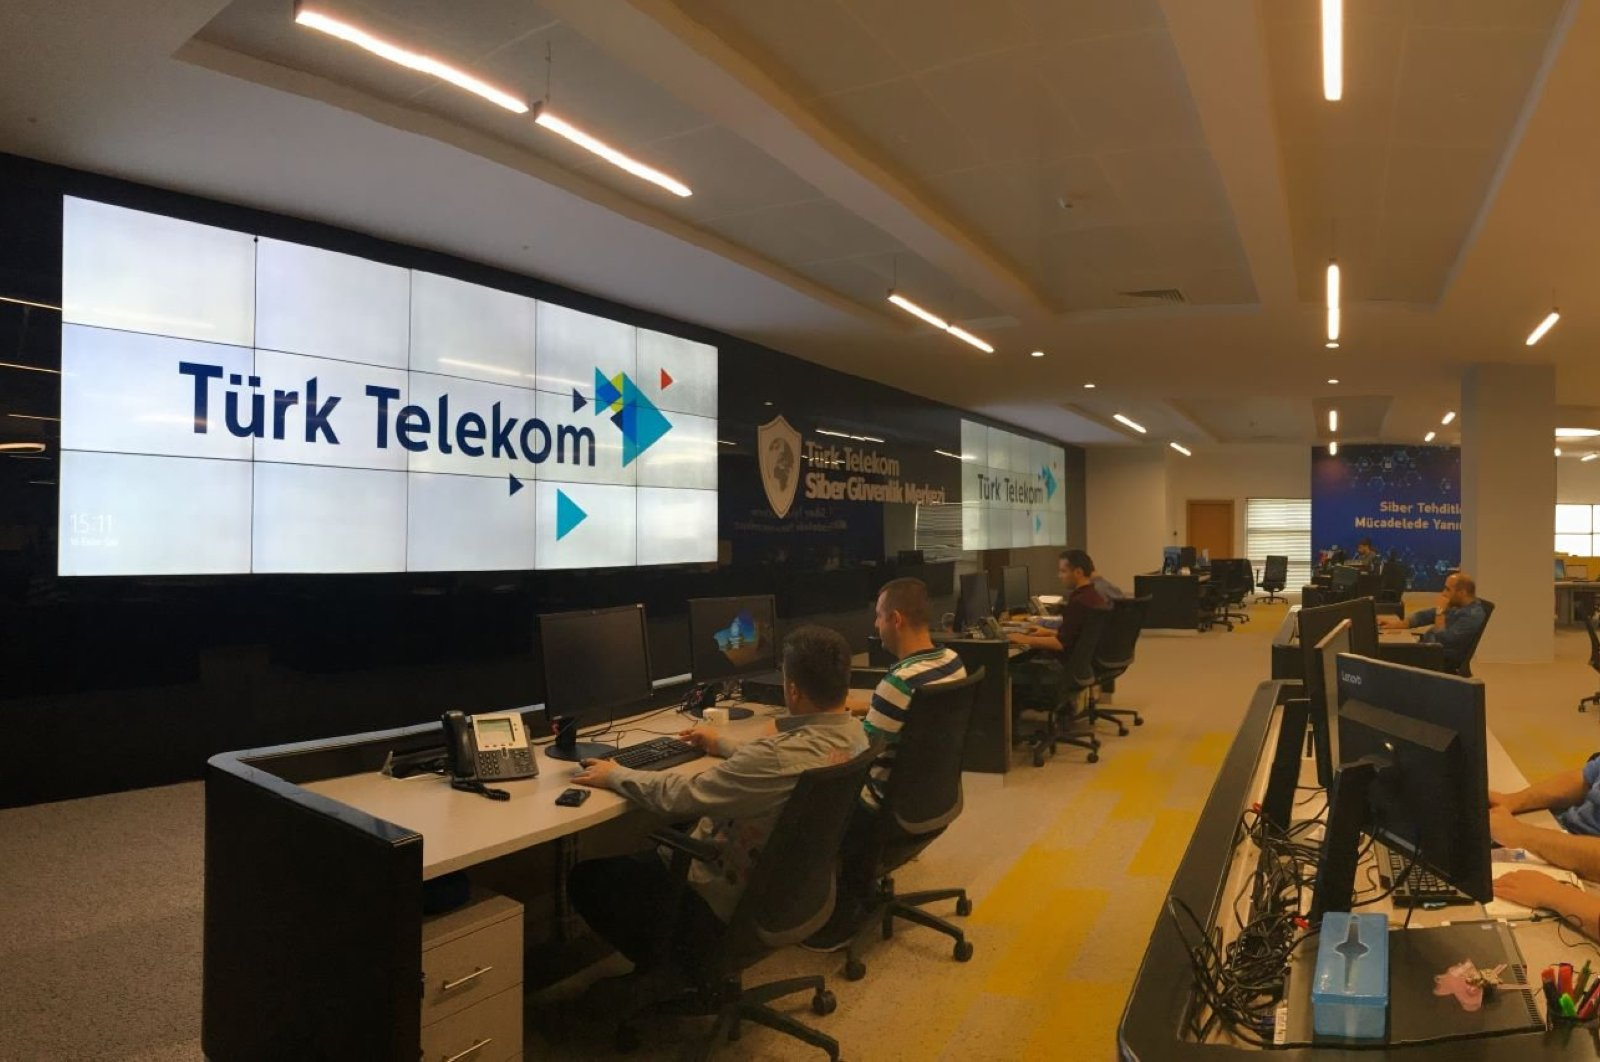 Workers in Türk Telekom's cybersecurity center, the largest in the country, in the capital Ankara, Feb. 28, 2020. (Sabah File Photo)